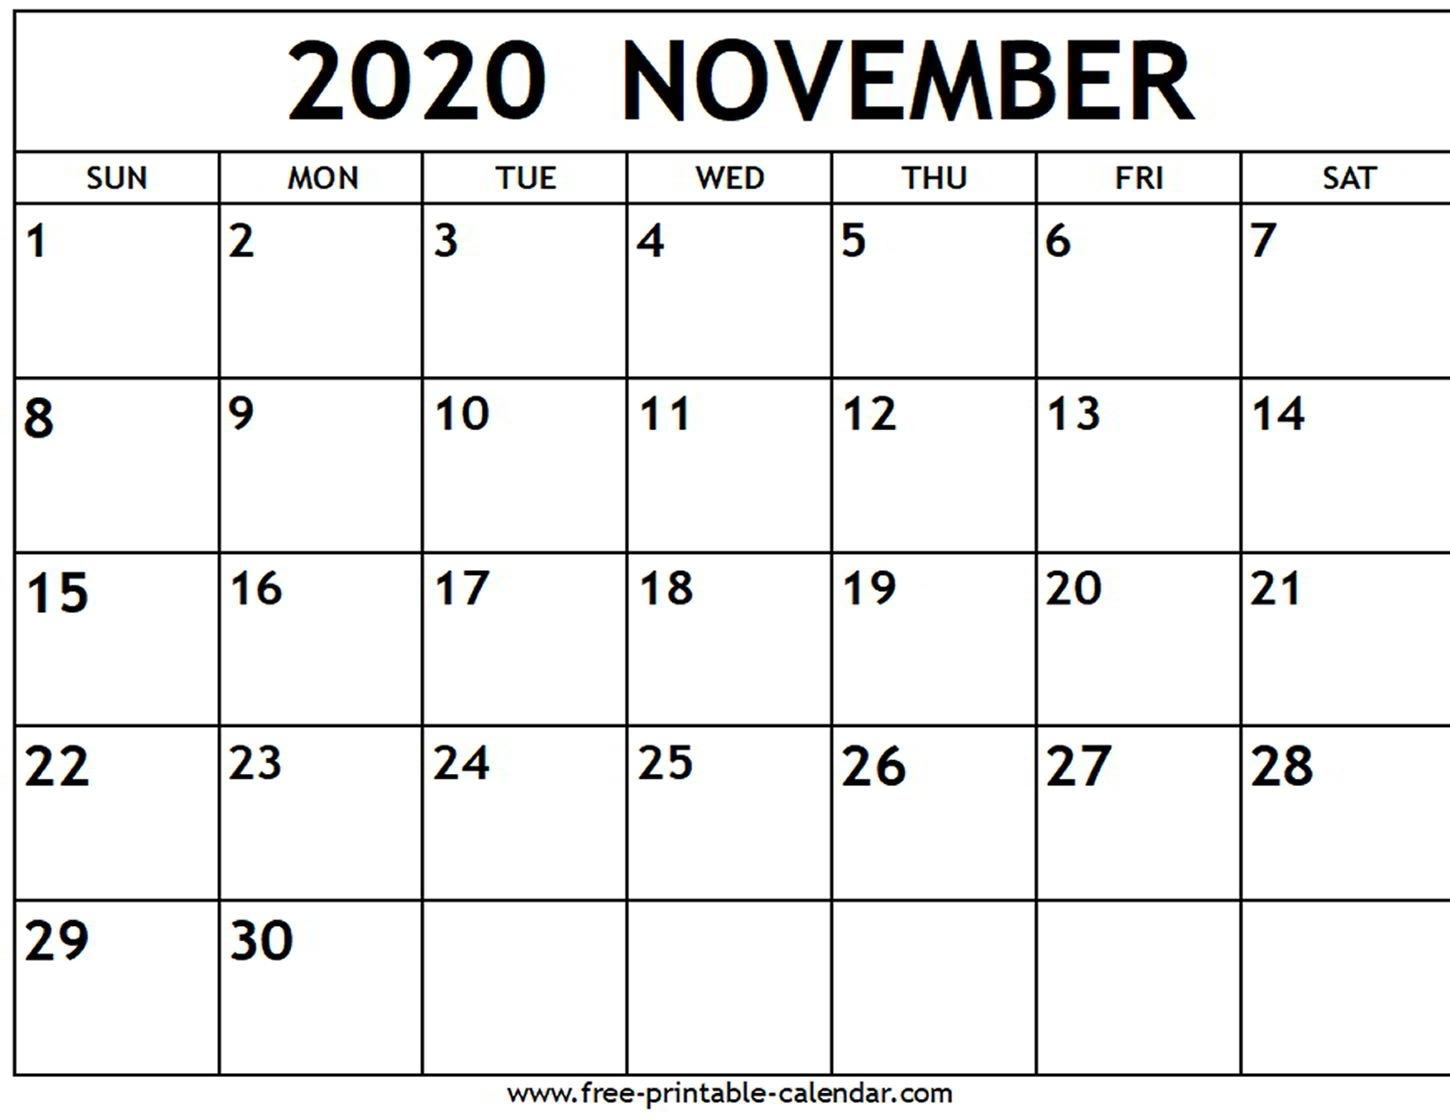 November 2020 Calendar Wallpapers